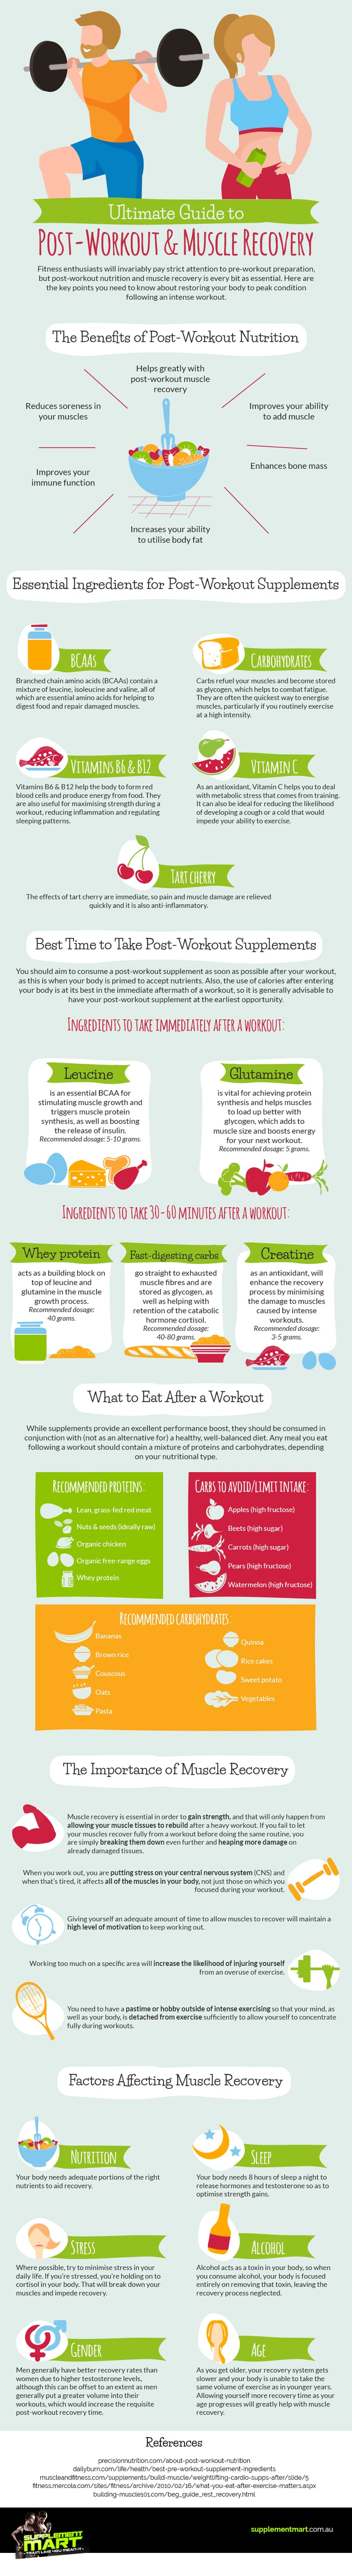 Guide to post Workout and Muscle recovery